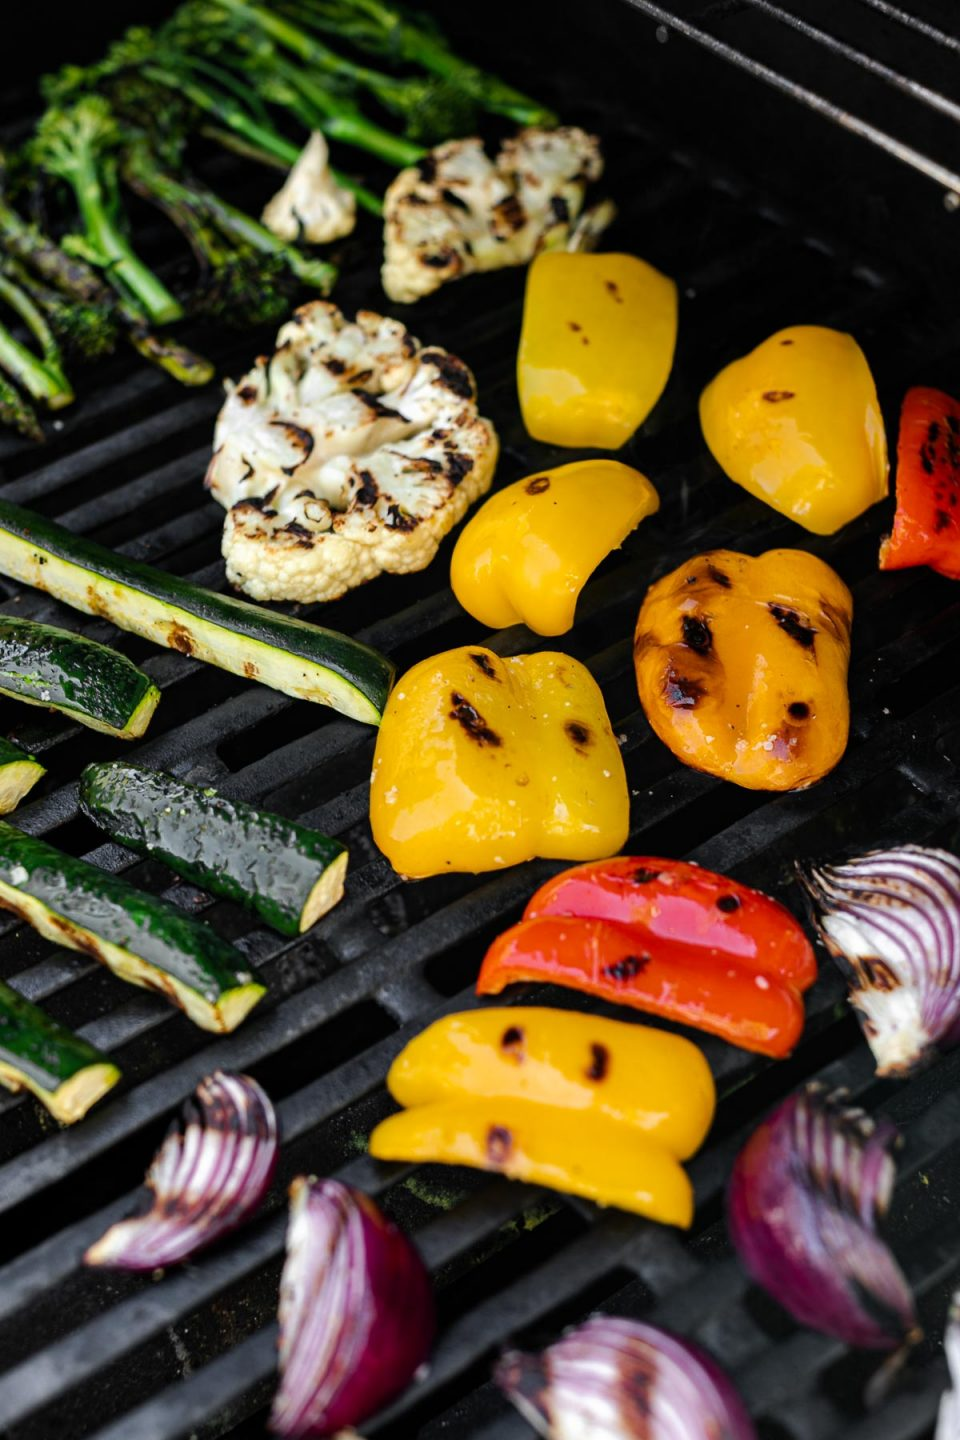 An angled shot of a variety of grilled veggies including grilled broccolini, grilled asparagus, grilled cauliflower, grilled zucchini, grilled onion, & grilled peppers that are being grilled on gas grill grates. Many of the veggies have grill marks on them after being flipped to the other side.